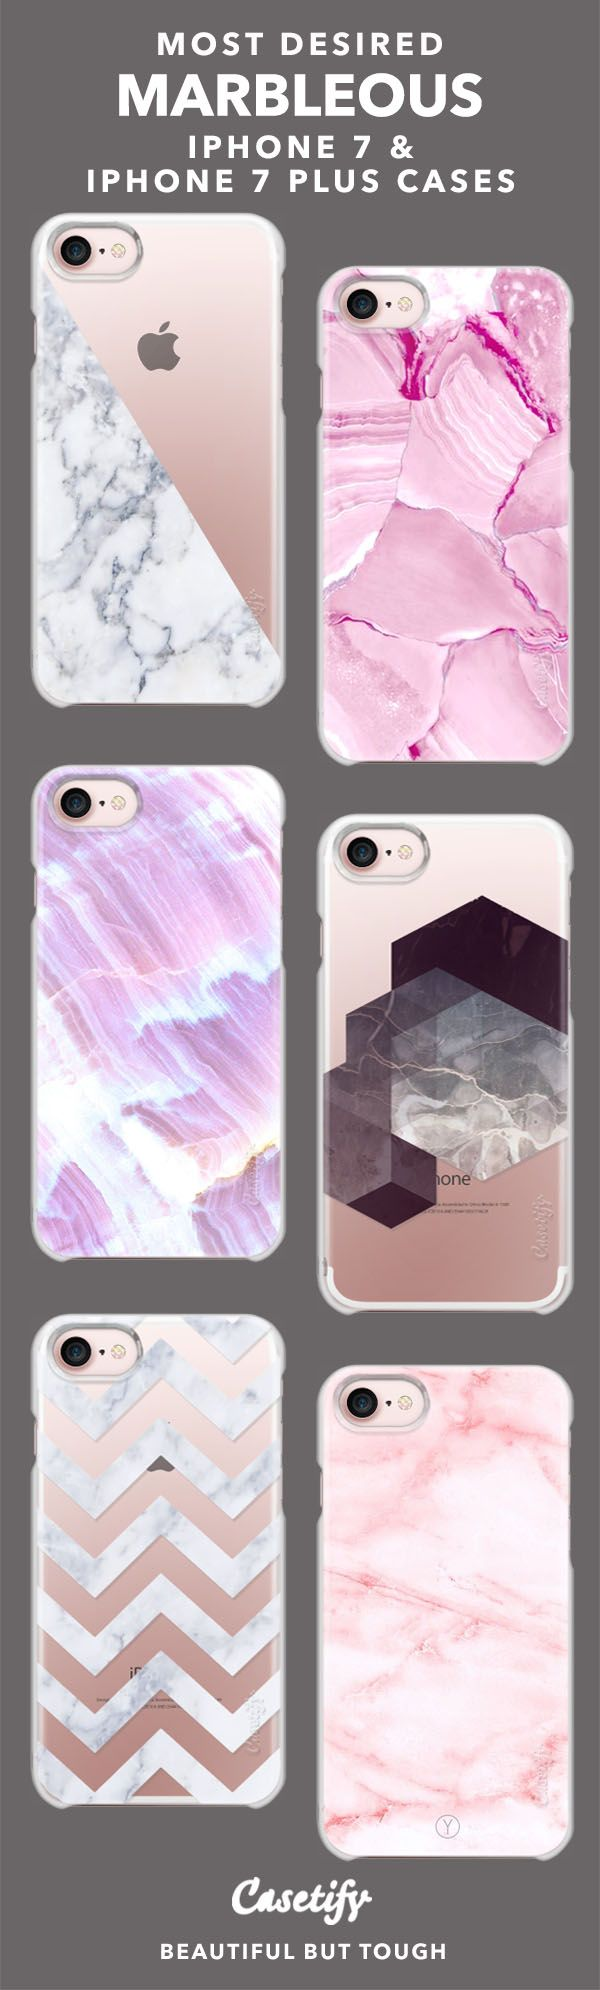 """""""Have Less, Do More, Be More.""""  ⚪️ ⚫️ ⬛️ ⬜️  